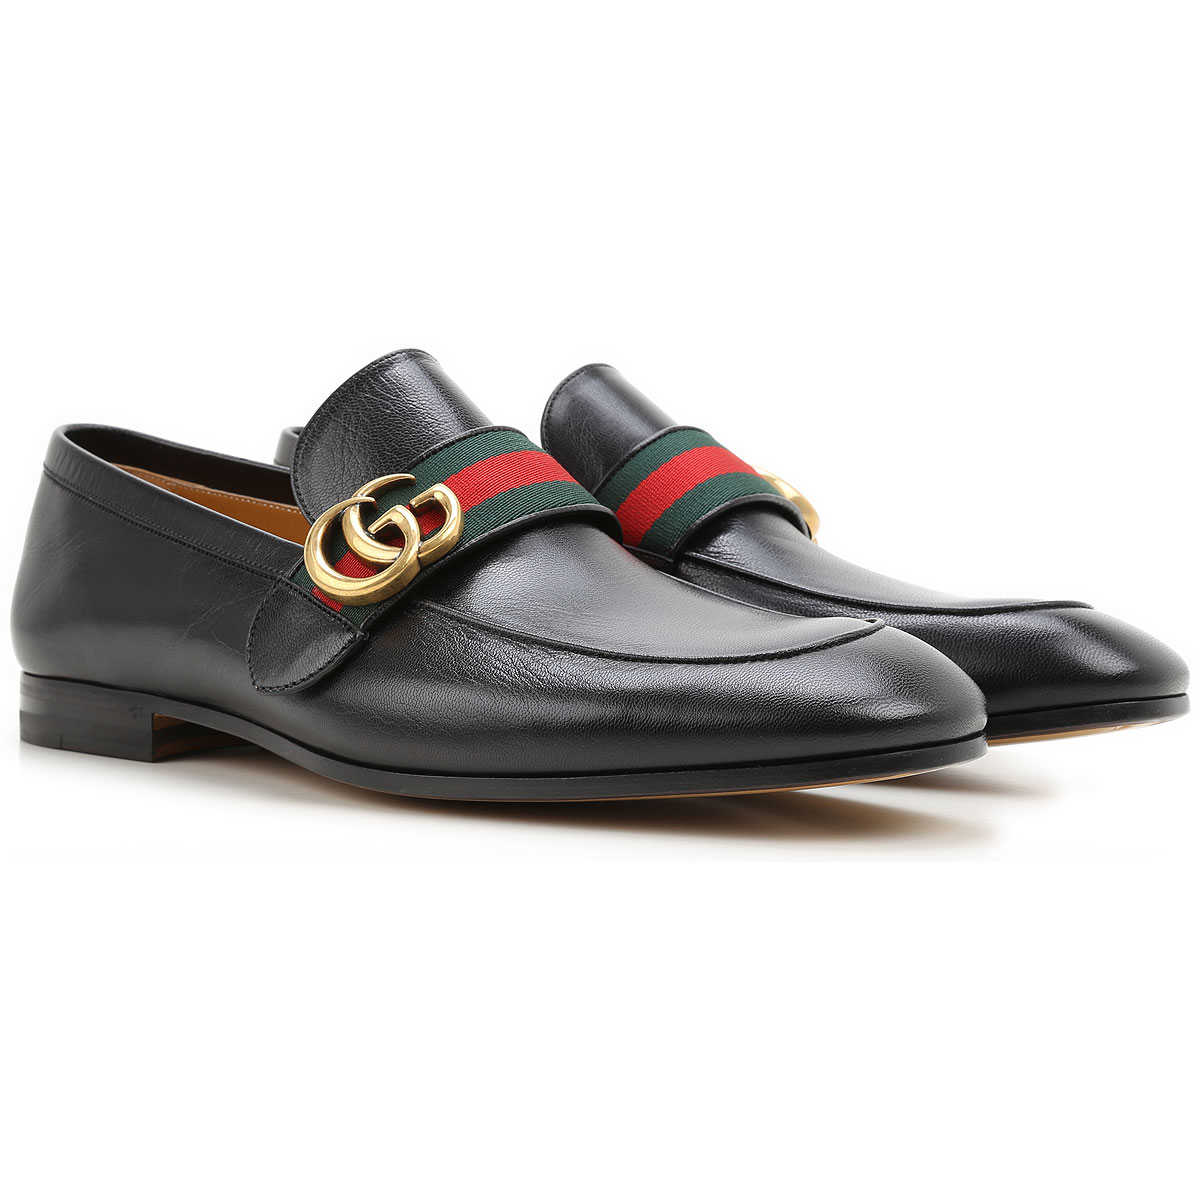 Gucci Loafers for Men, Black, Leather